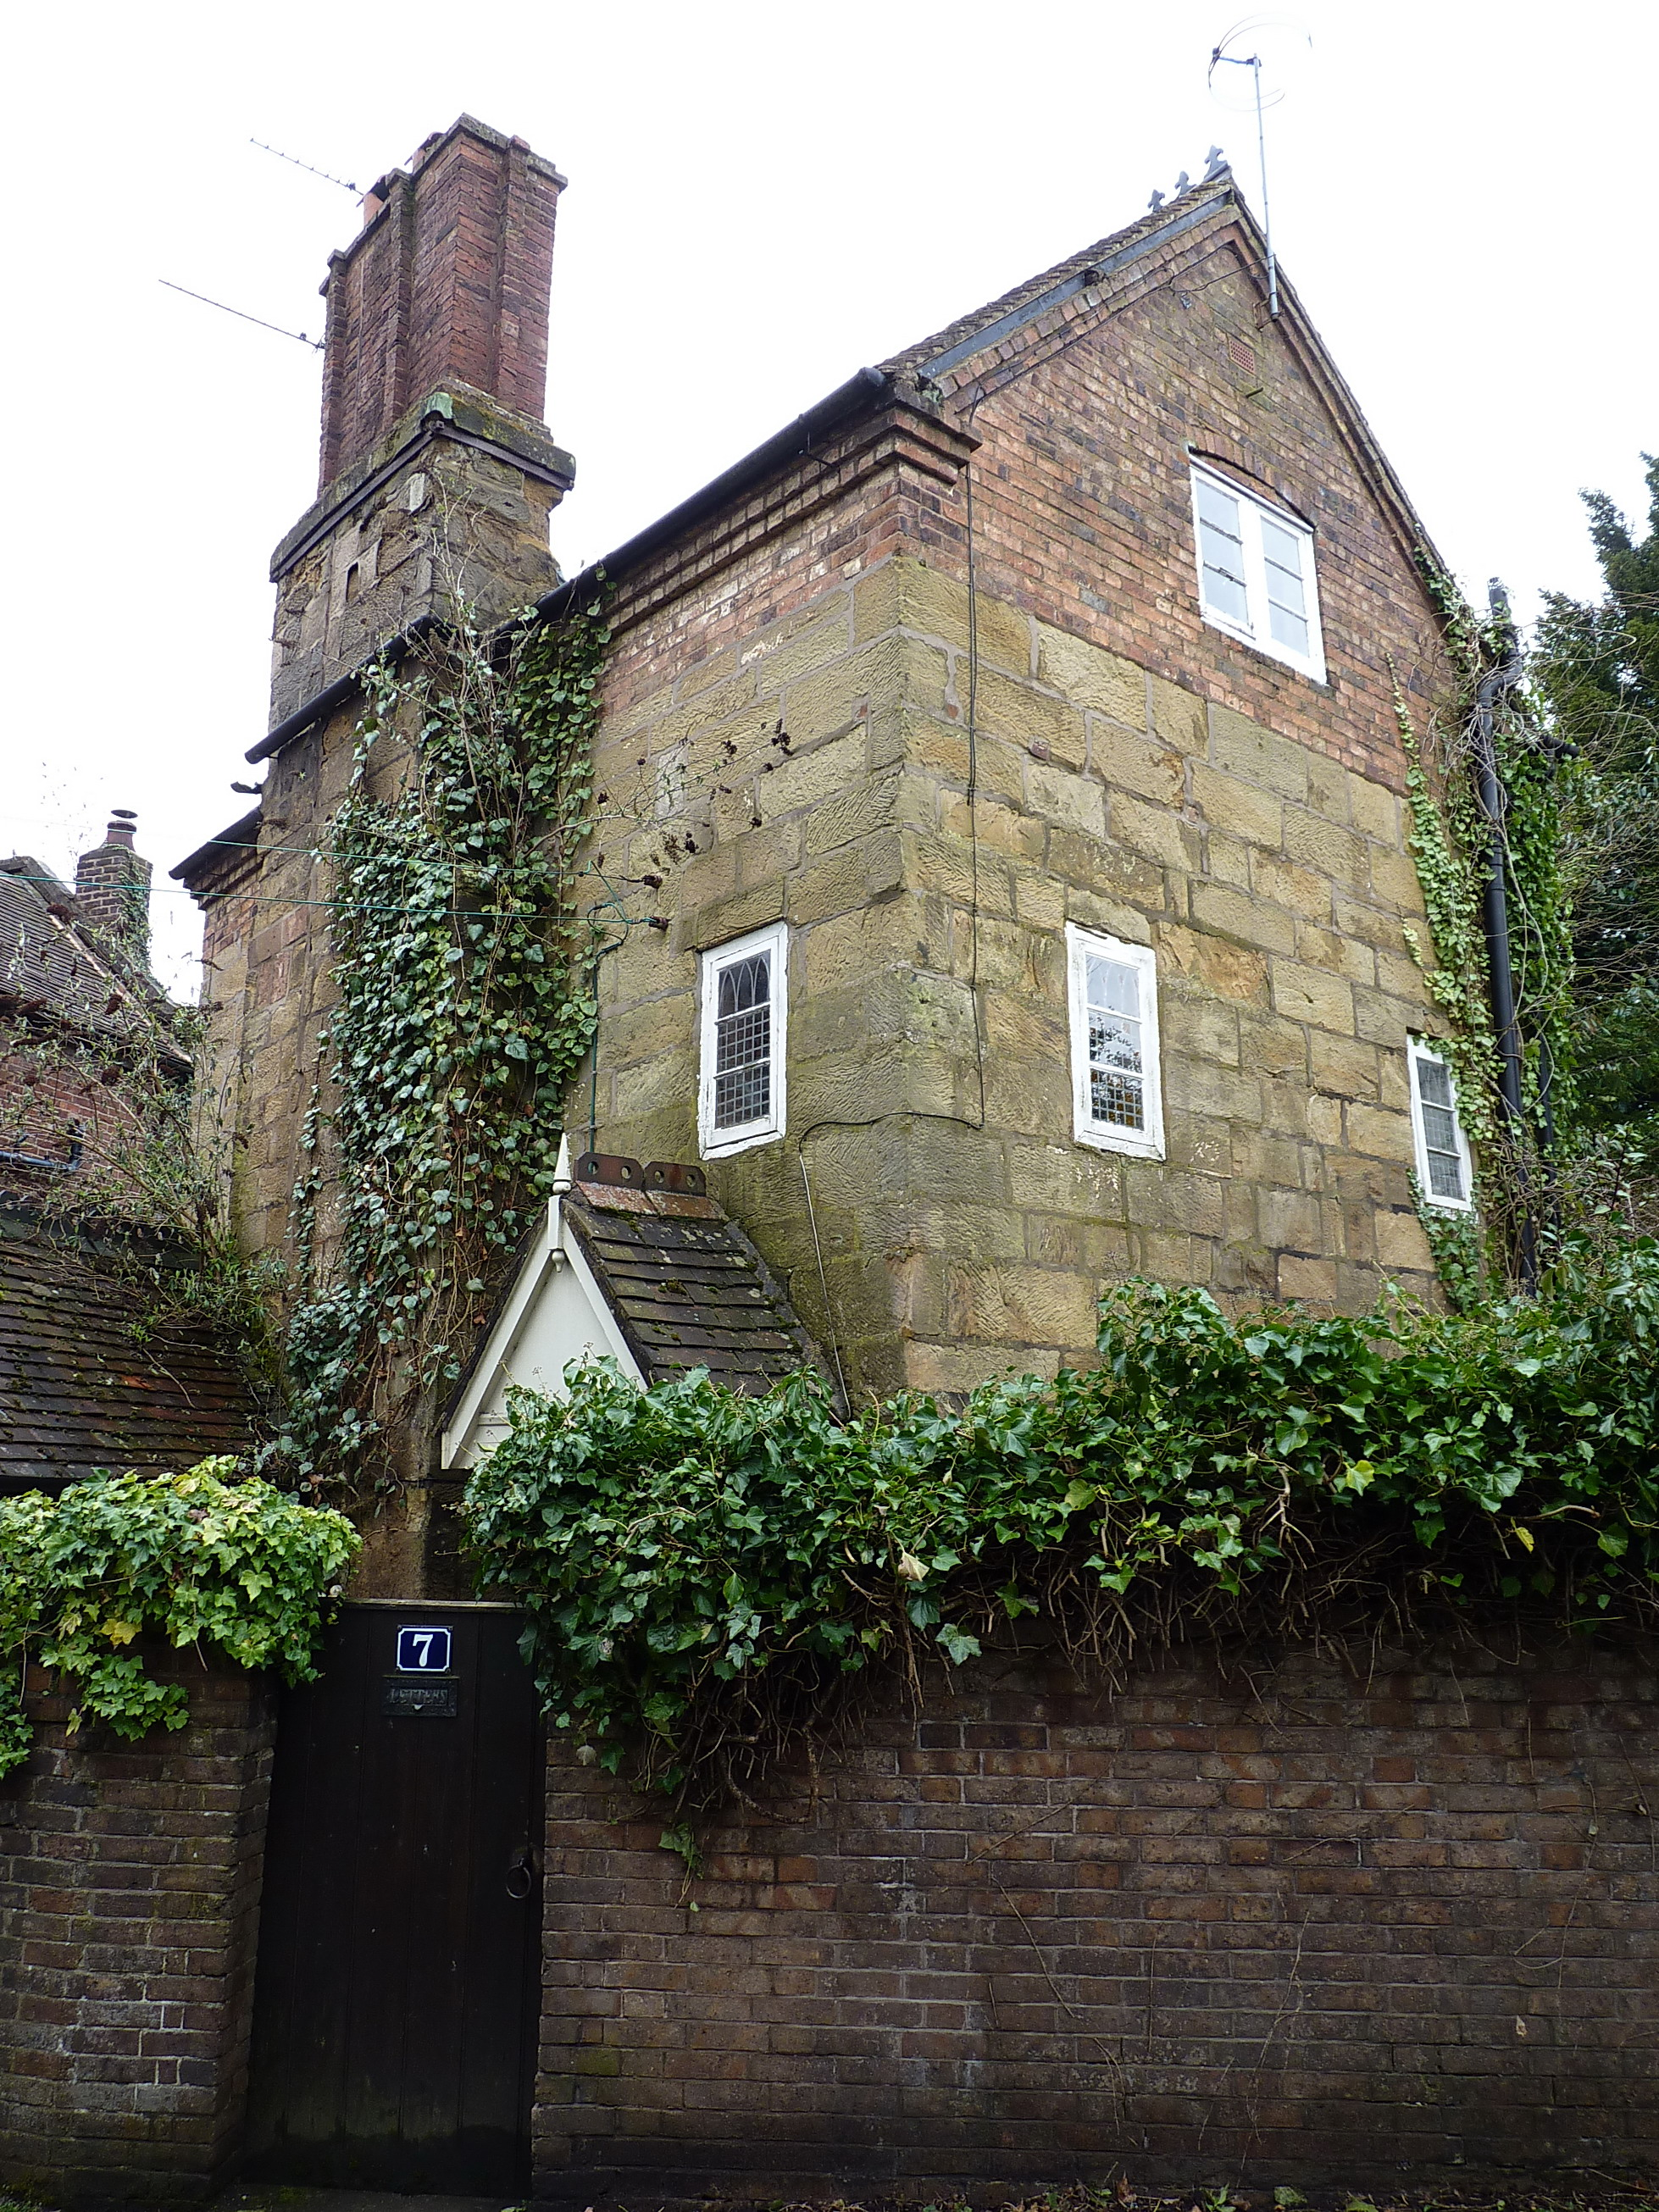 File:7 Church Street, Madeley.jpg - Wikimedia Commons